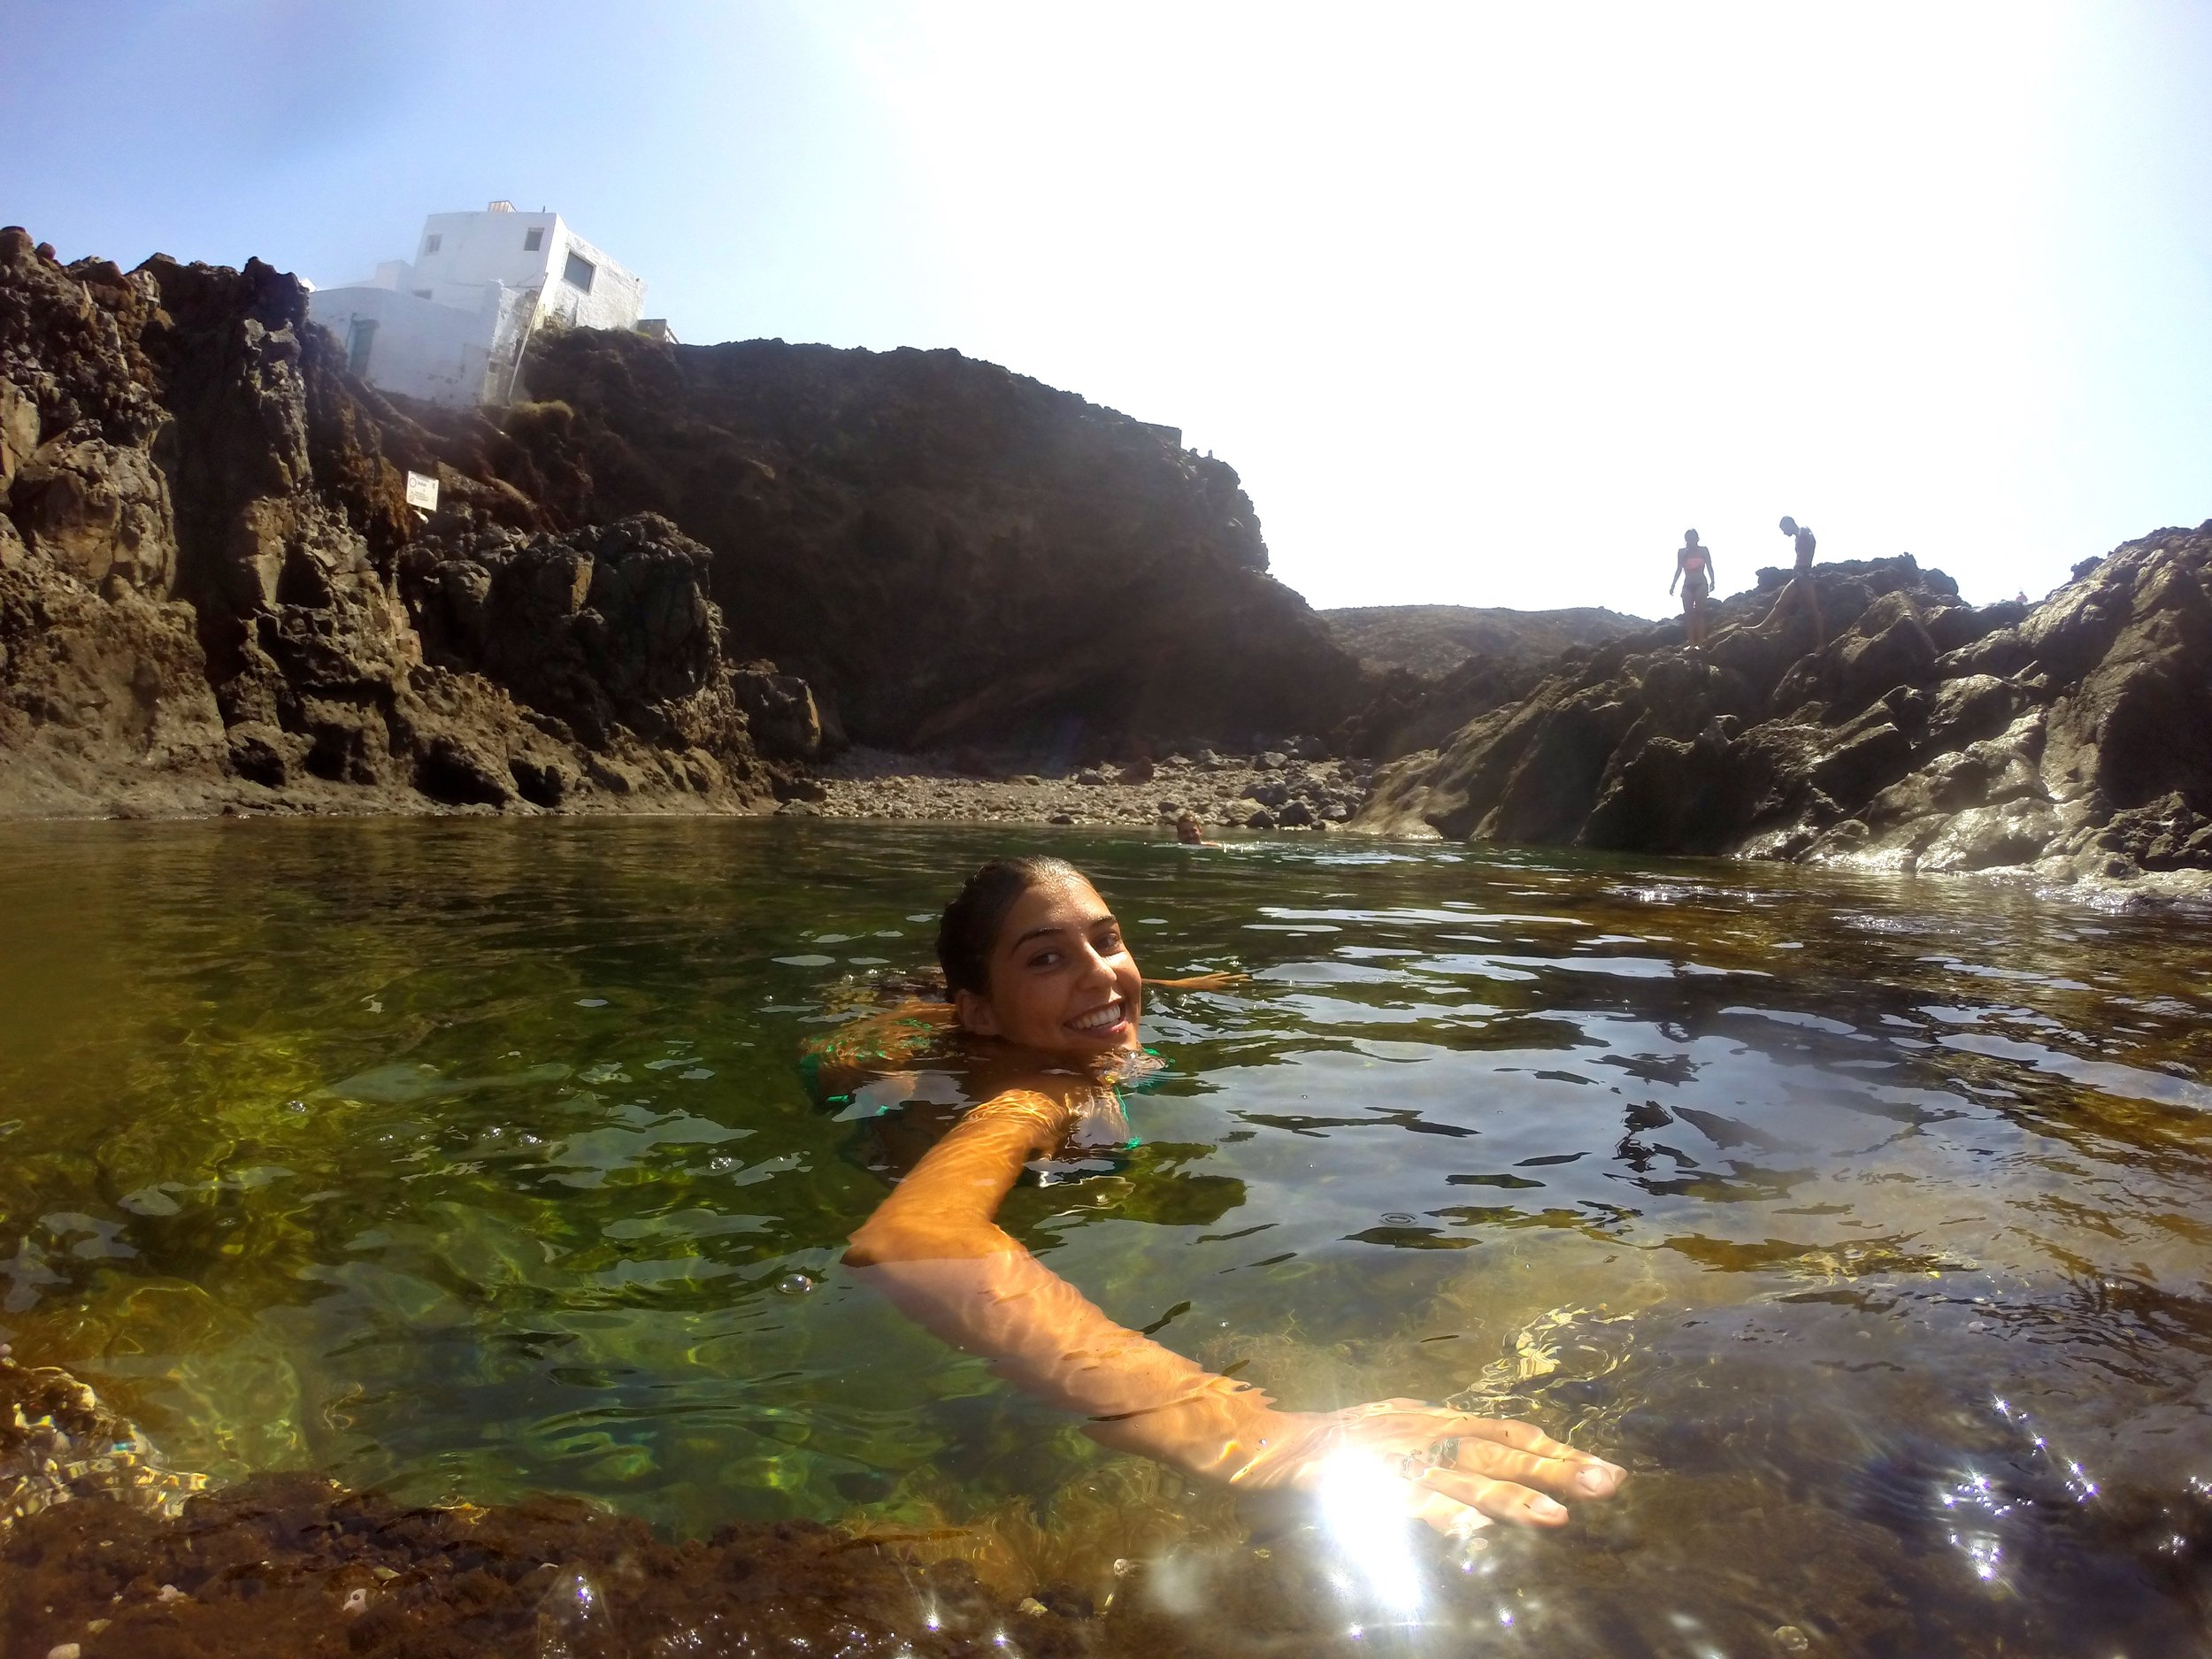 Above: Sonia in her natural habitat, the rock pools of Gran Canaria.